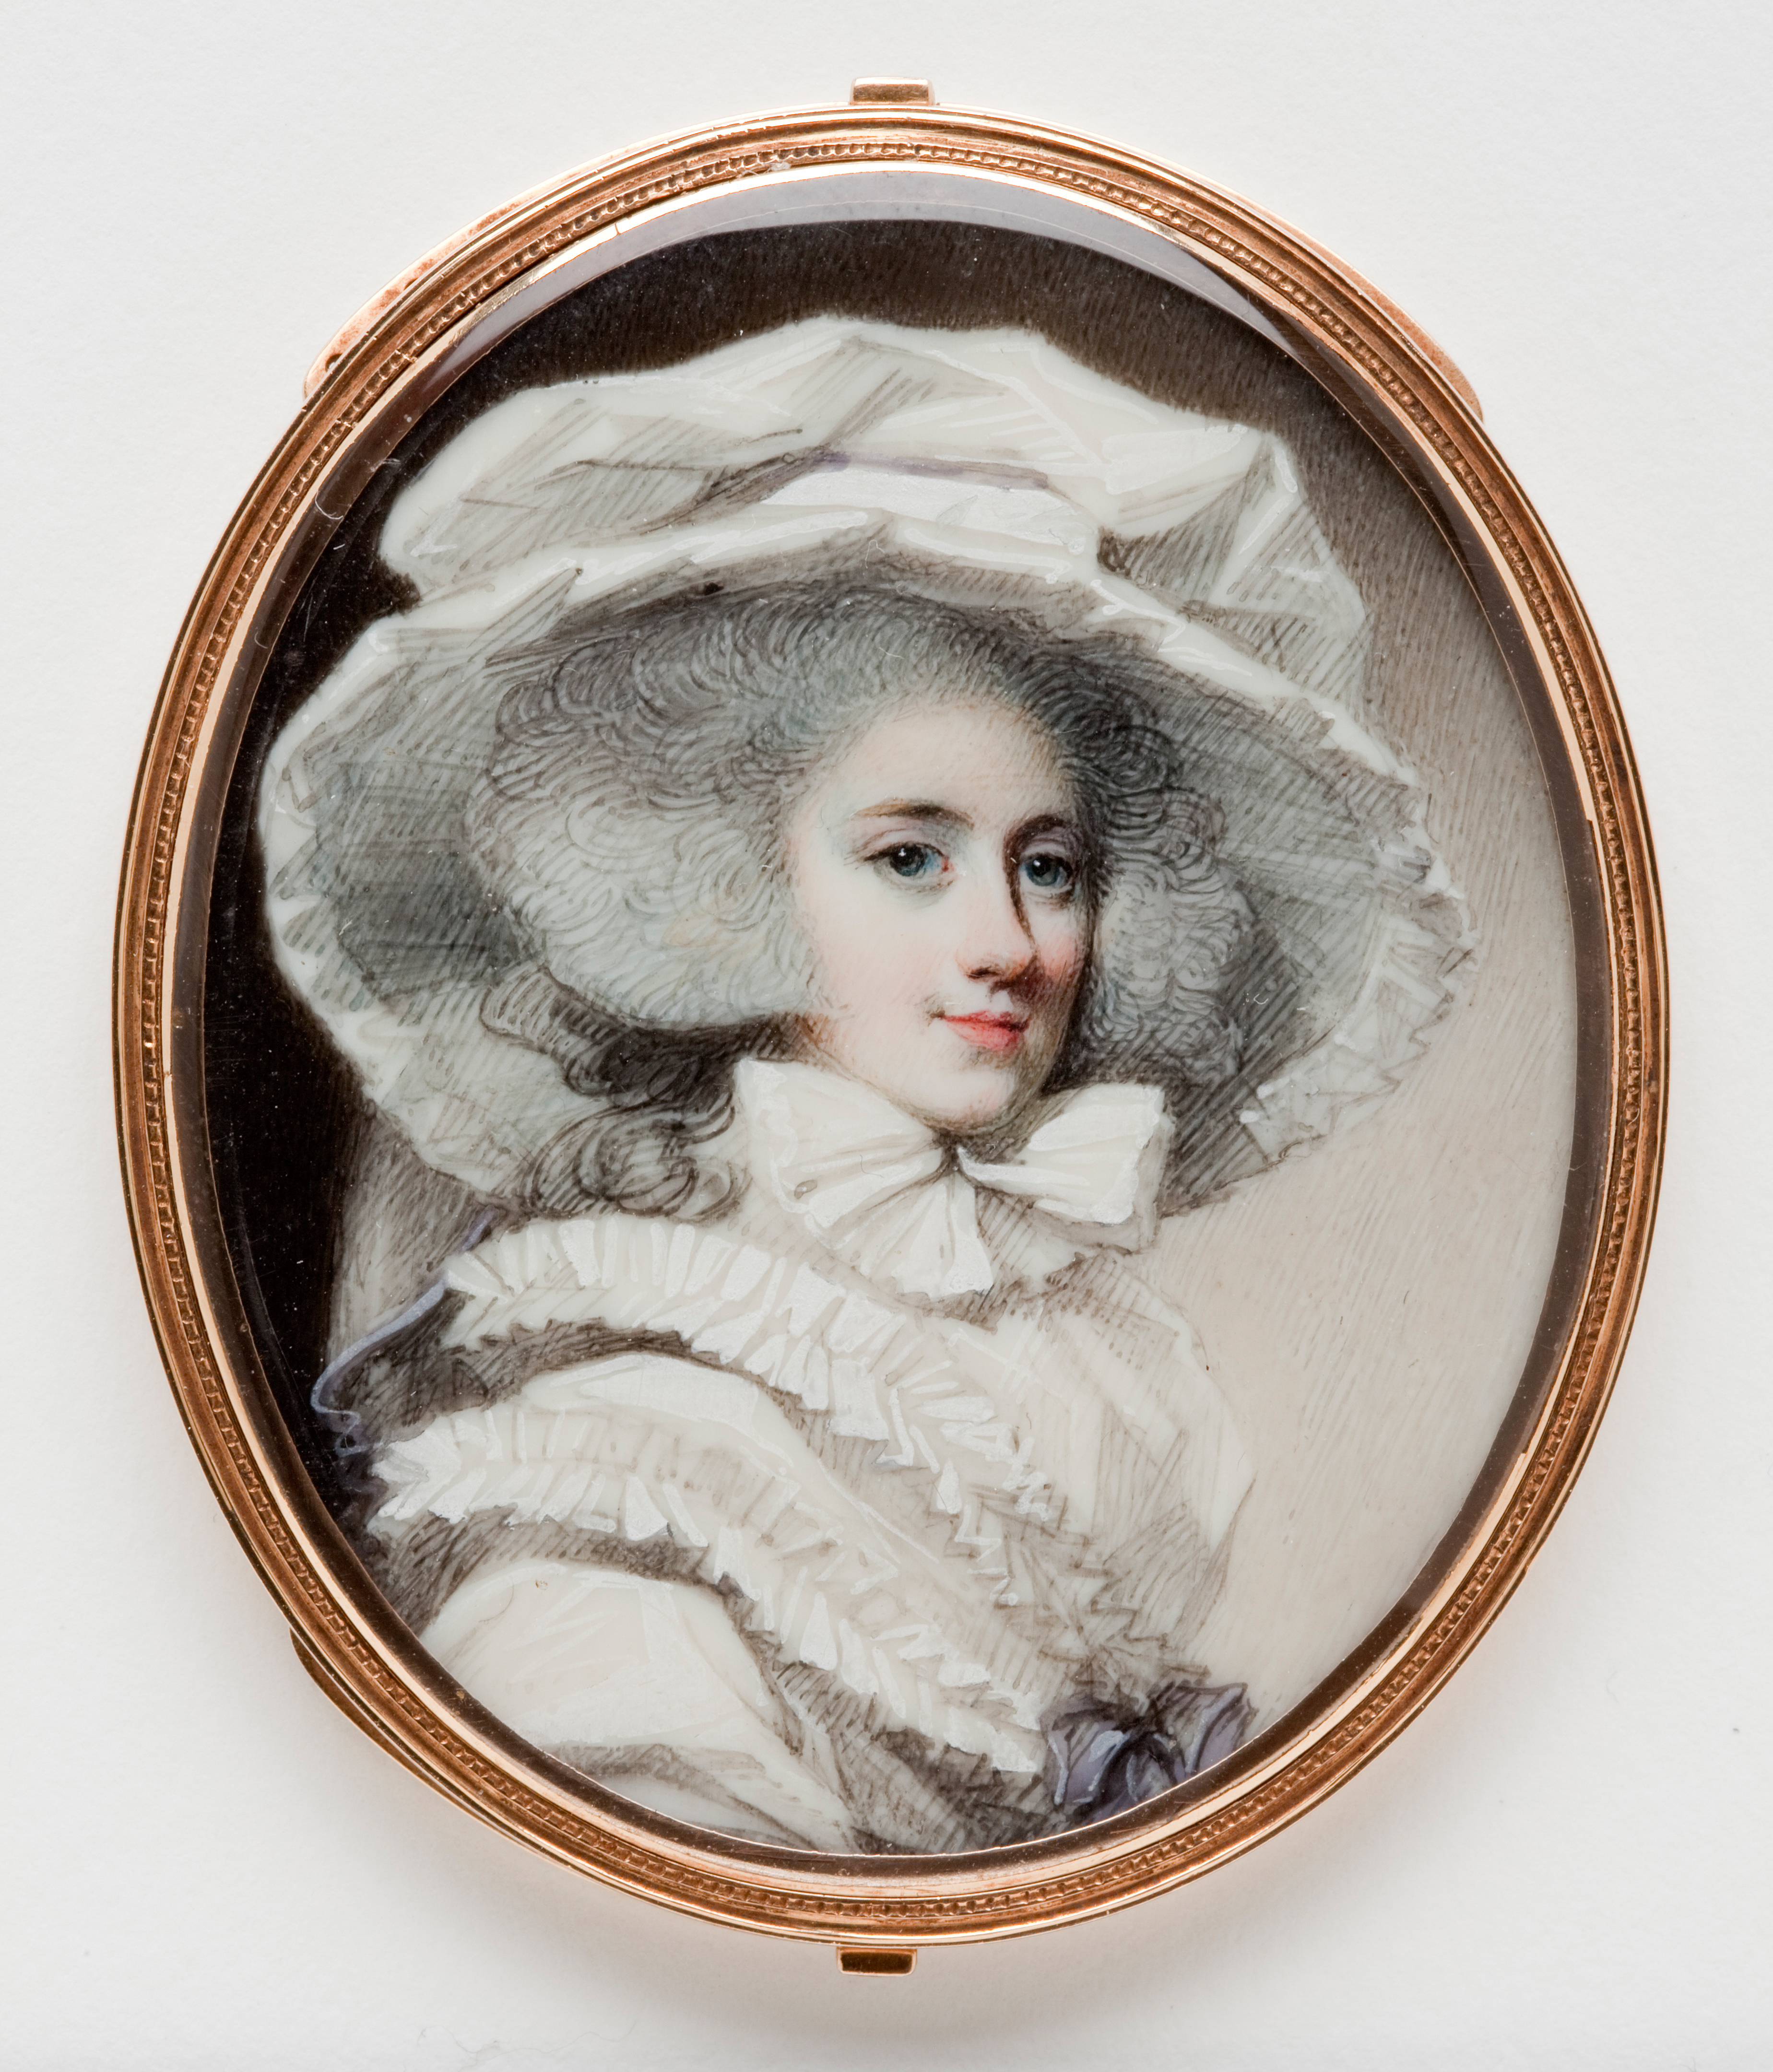 George Engleheart (English, 1750-1829), Woman in a Hat, ca. 1785/90. Watercolor on ivory in gold bracelet mount. 2 1/2 x 2 1/8 in. Milwaukee Art Museum, Gift of Edith Maclay in memory of Frederick H. von Schleinitz M2010.18. Photo credit: John R. Glembin.